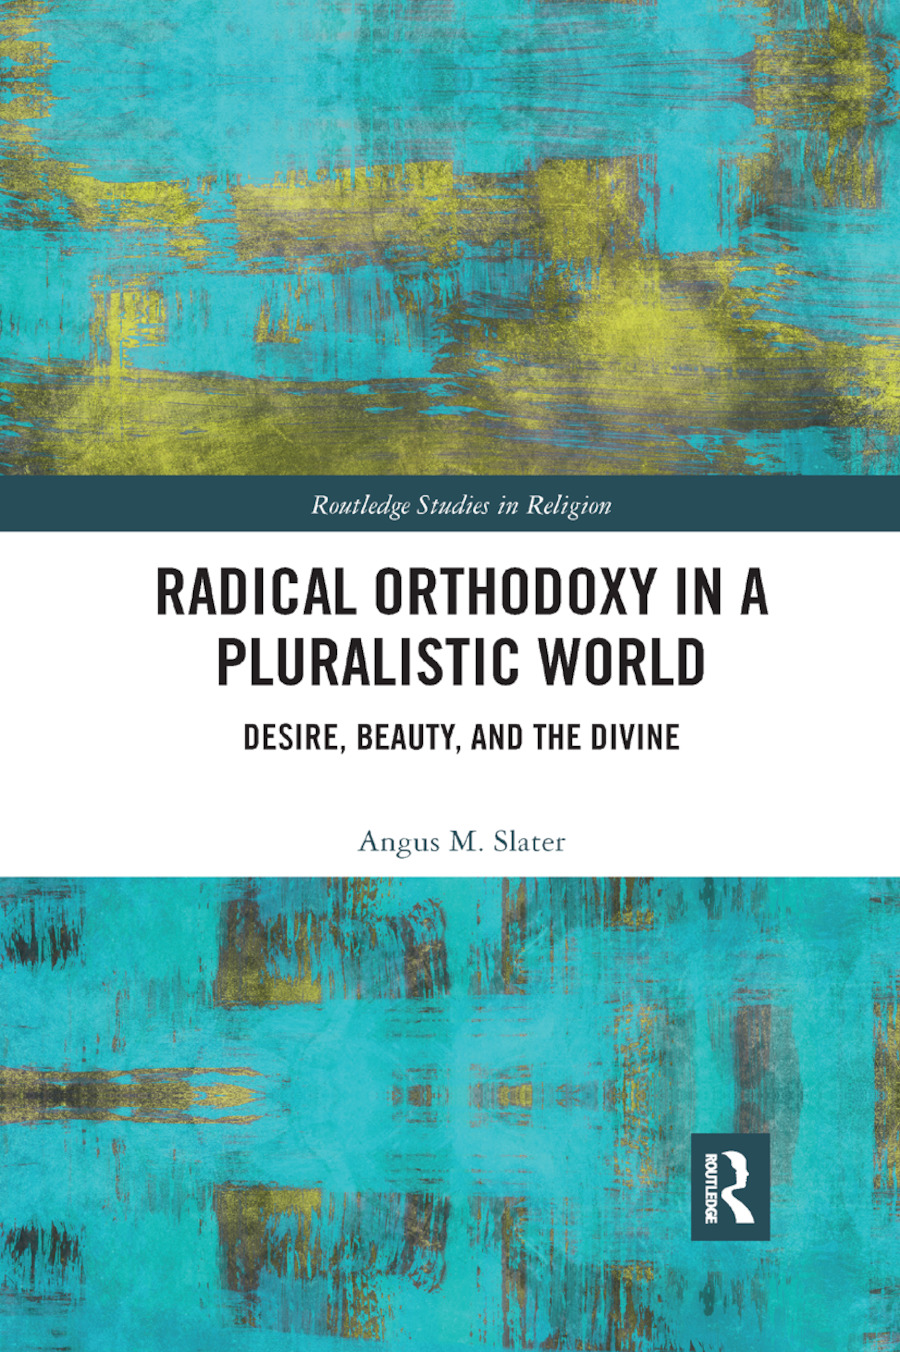 Radical Orthodoxy in a Pluralistic World: Desire, Beauty, and the Divine book cover